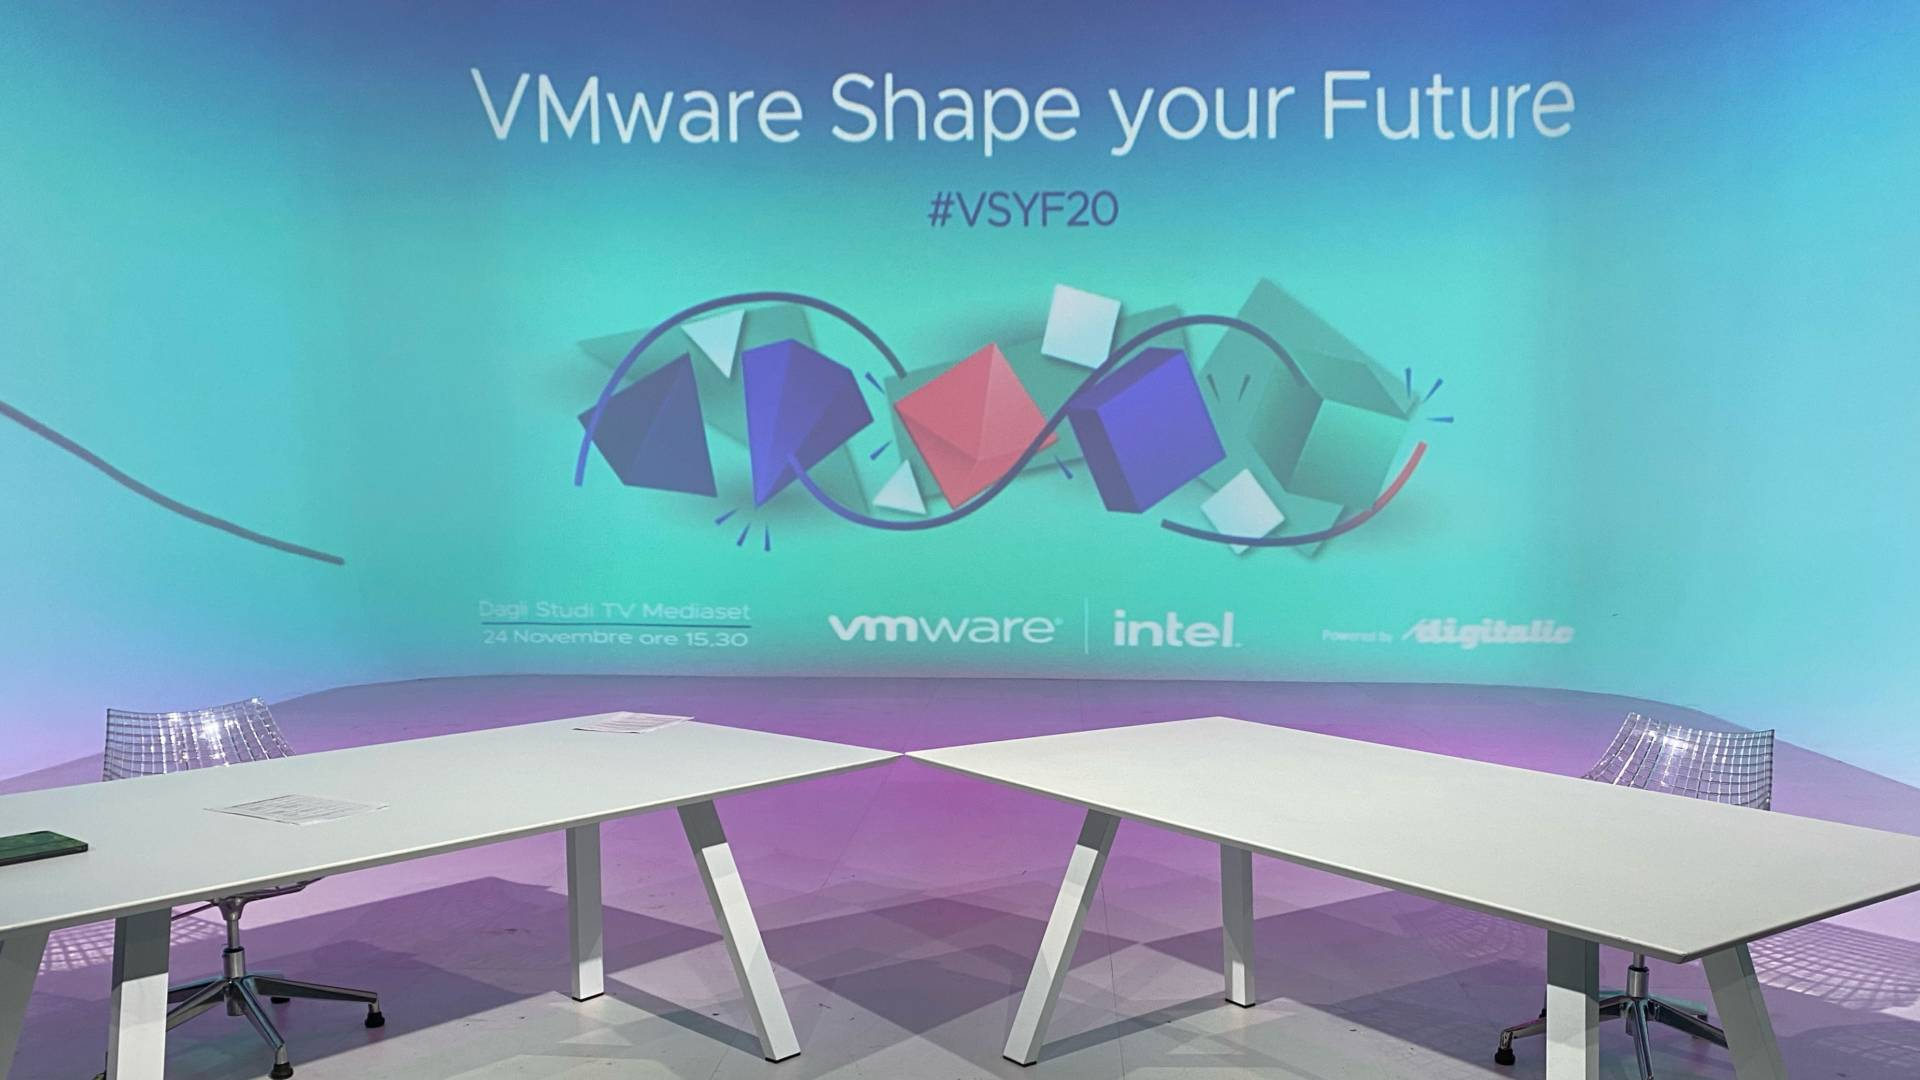 VMware Shape your Future 2020 powered by Digitalic, 24/11 ore 15,30